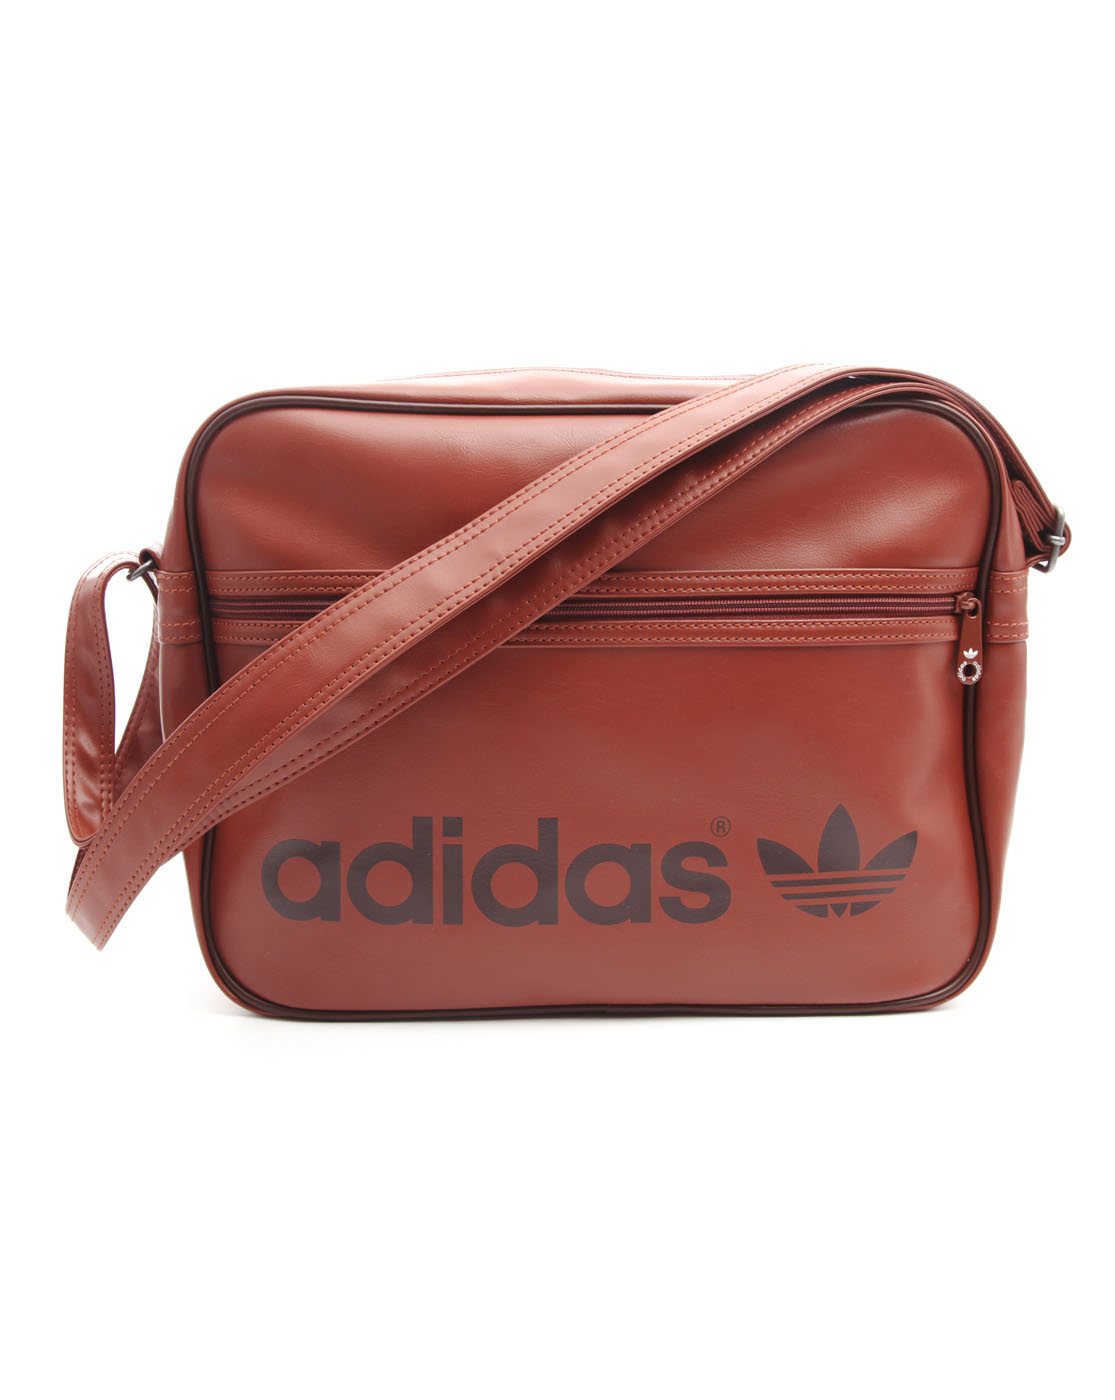 Sac Adidas Originals Marron Airliner Ac Bandoulière wvH8xvq